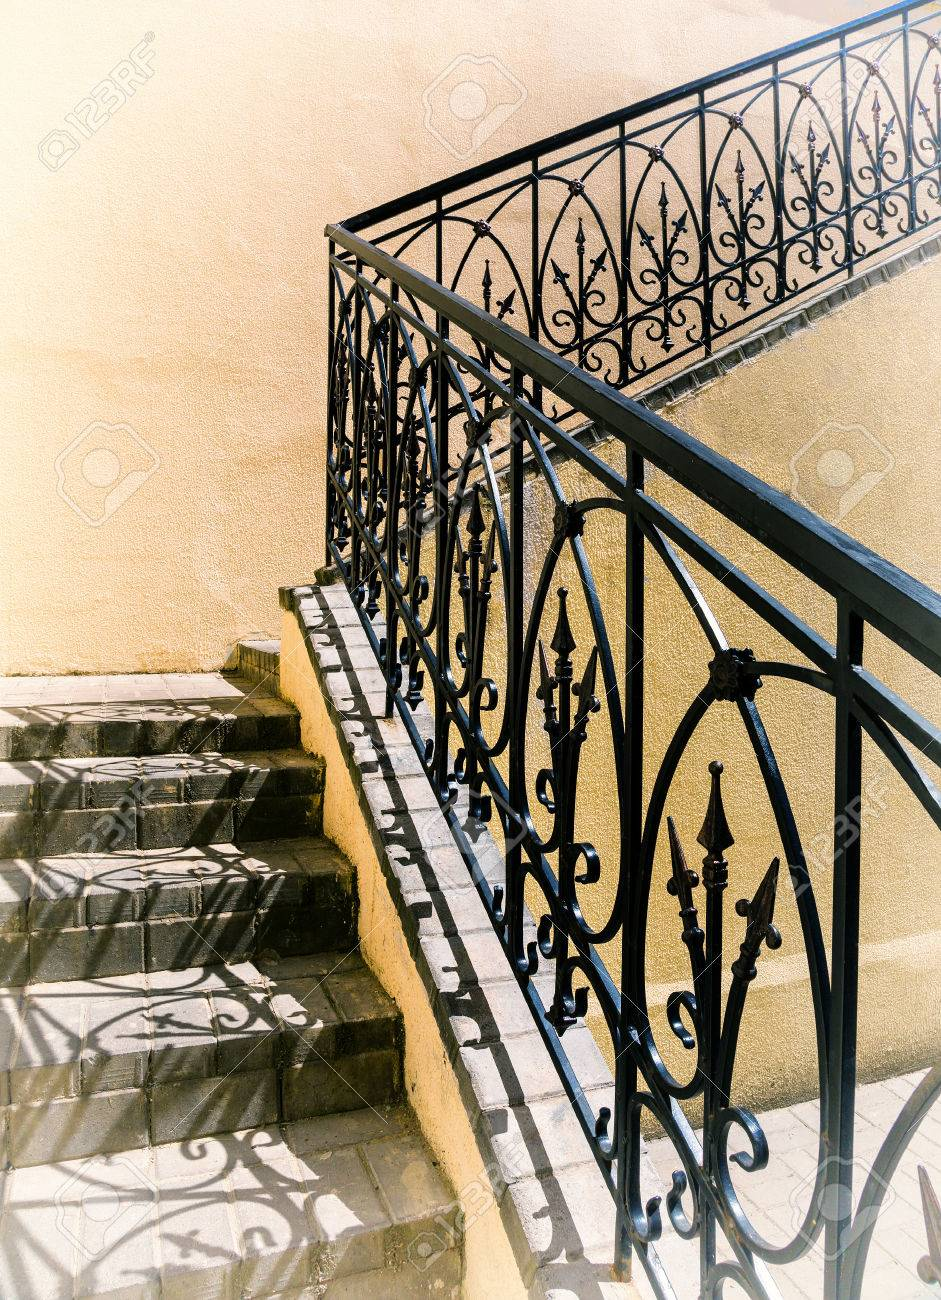 Old Stairs Of Concrete Outdoors Black Steel Railing With A Yellow Stock Photo Picture And Royalty Free Image Image 65823240